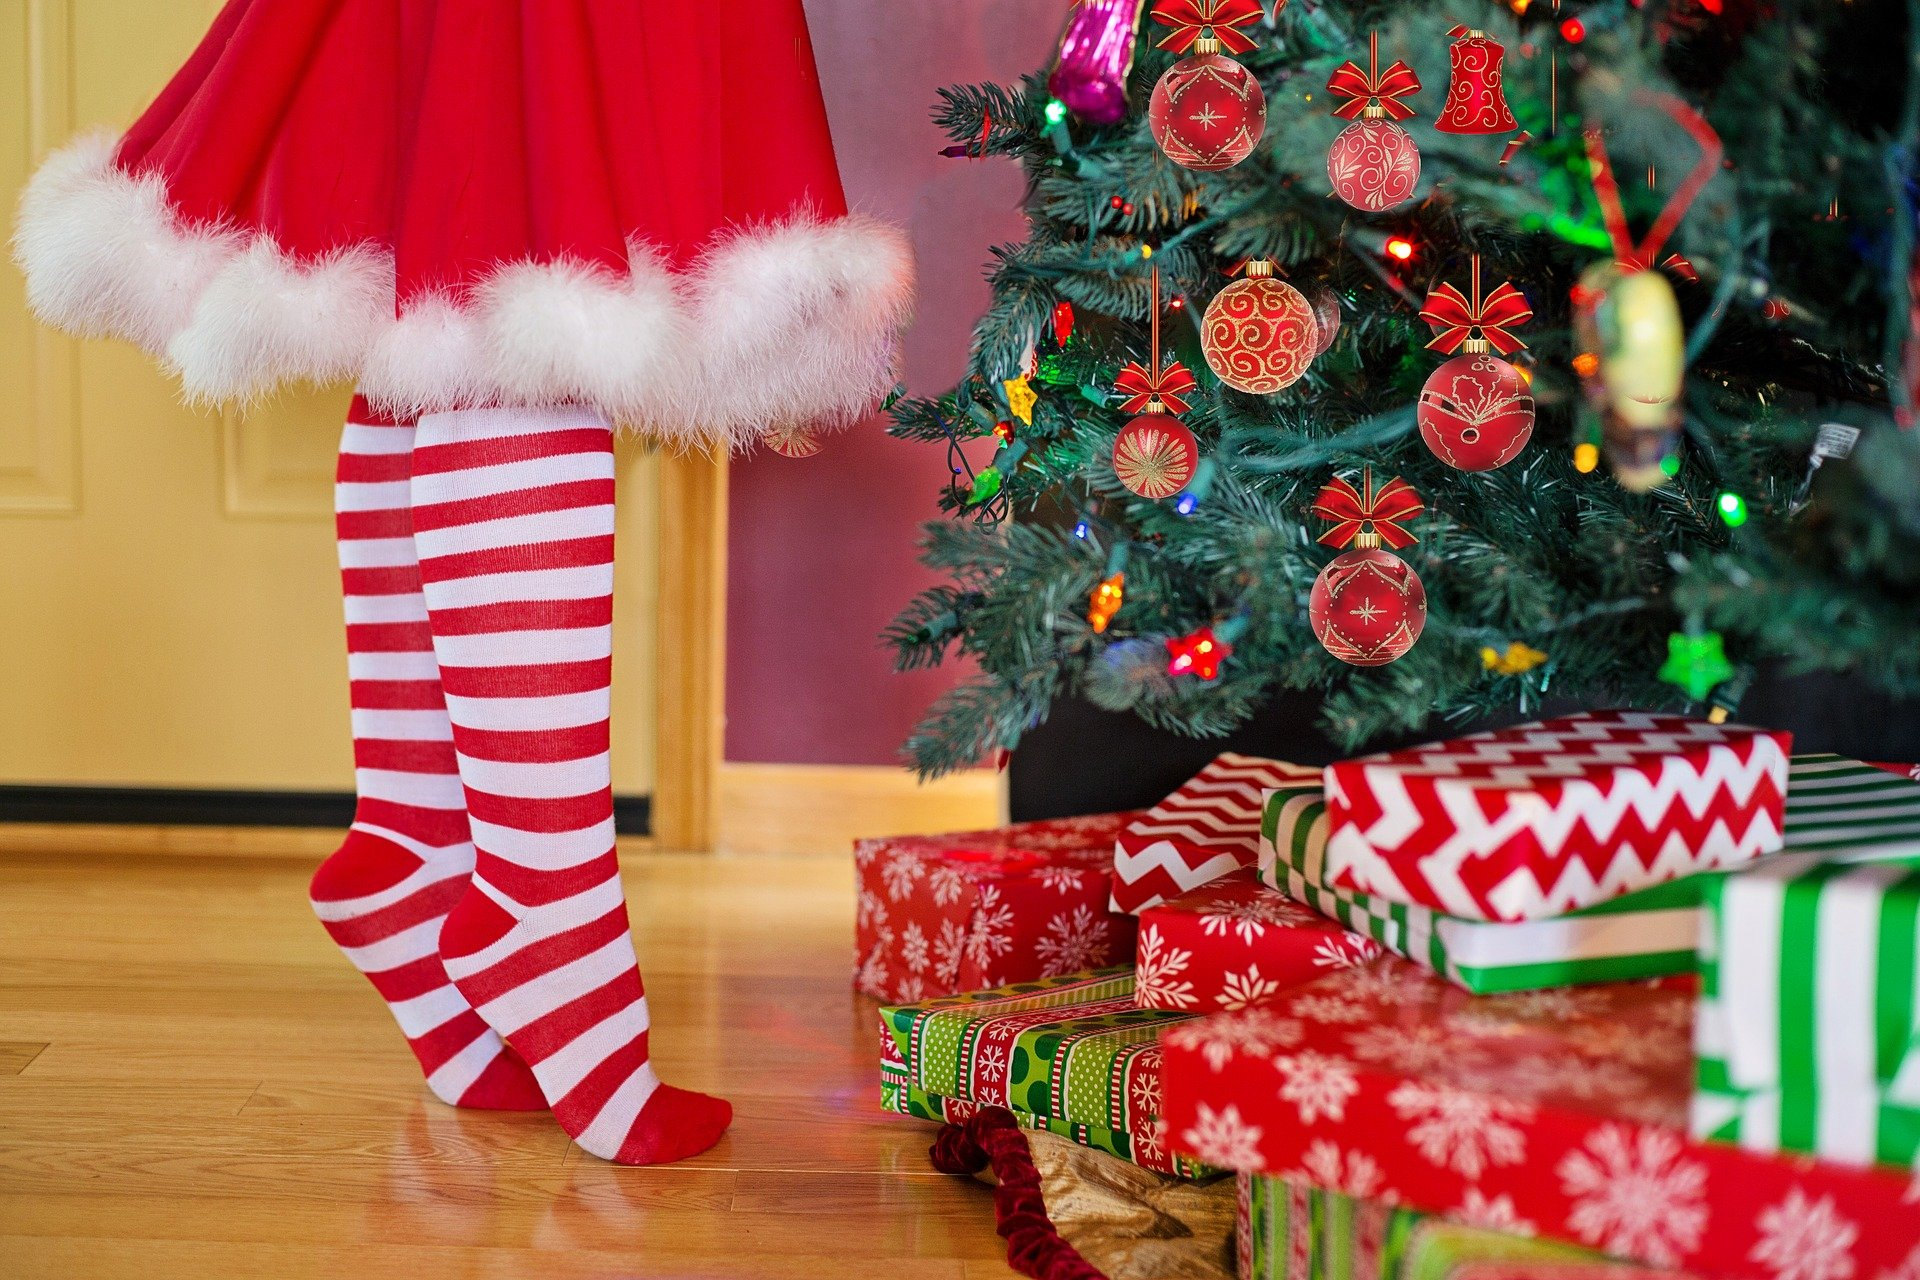 Girl wearing red dress and white and red striped socks decorating a Christmas tree with presents underneath it